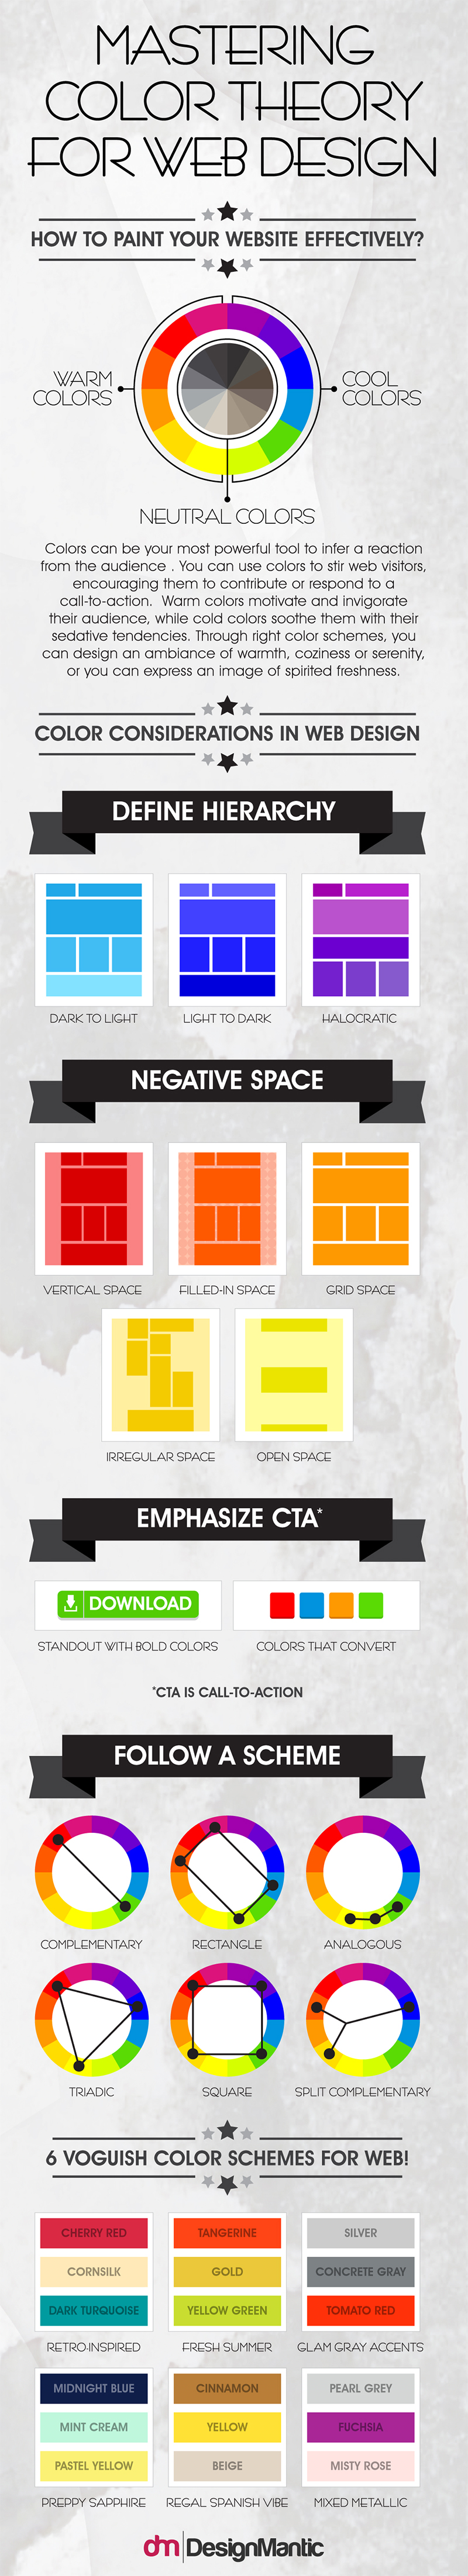 Color Commandments of Web Design